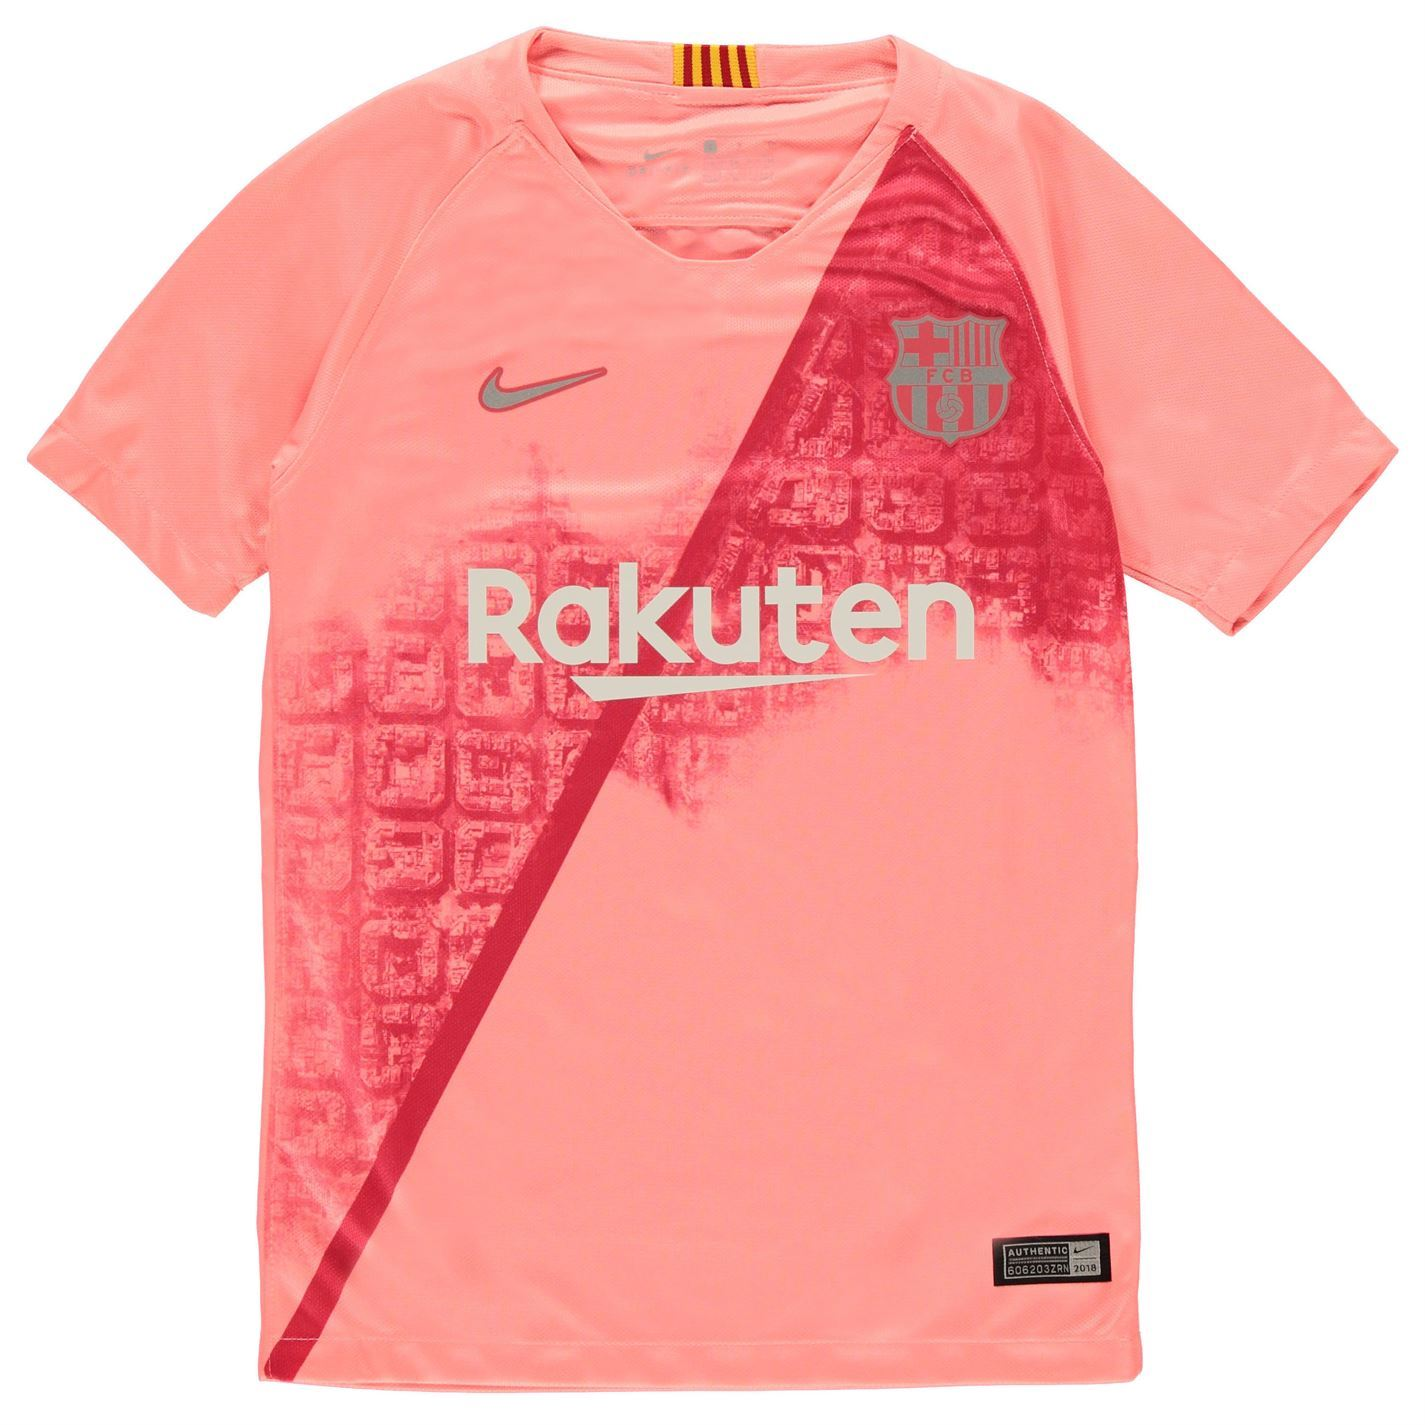 on sale 013a9 c05a0 Details about Nike Barcelona Third Jersey 2018 2019 Juniors Pink/Silver  Football Soccer Shirt